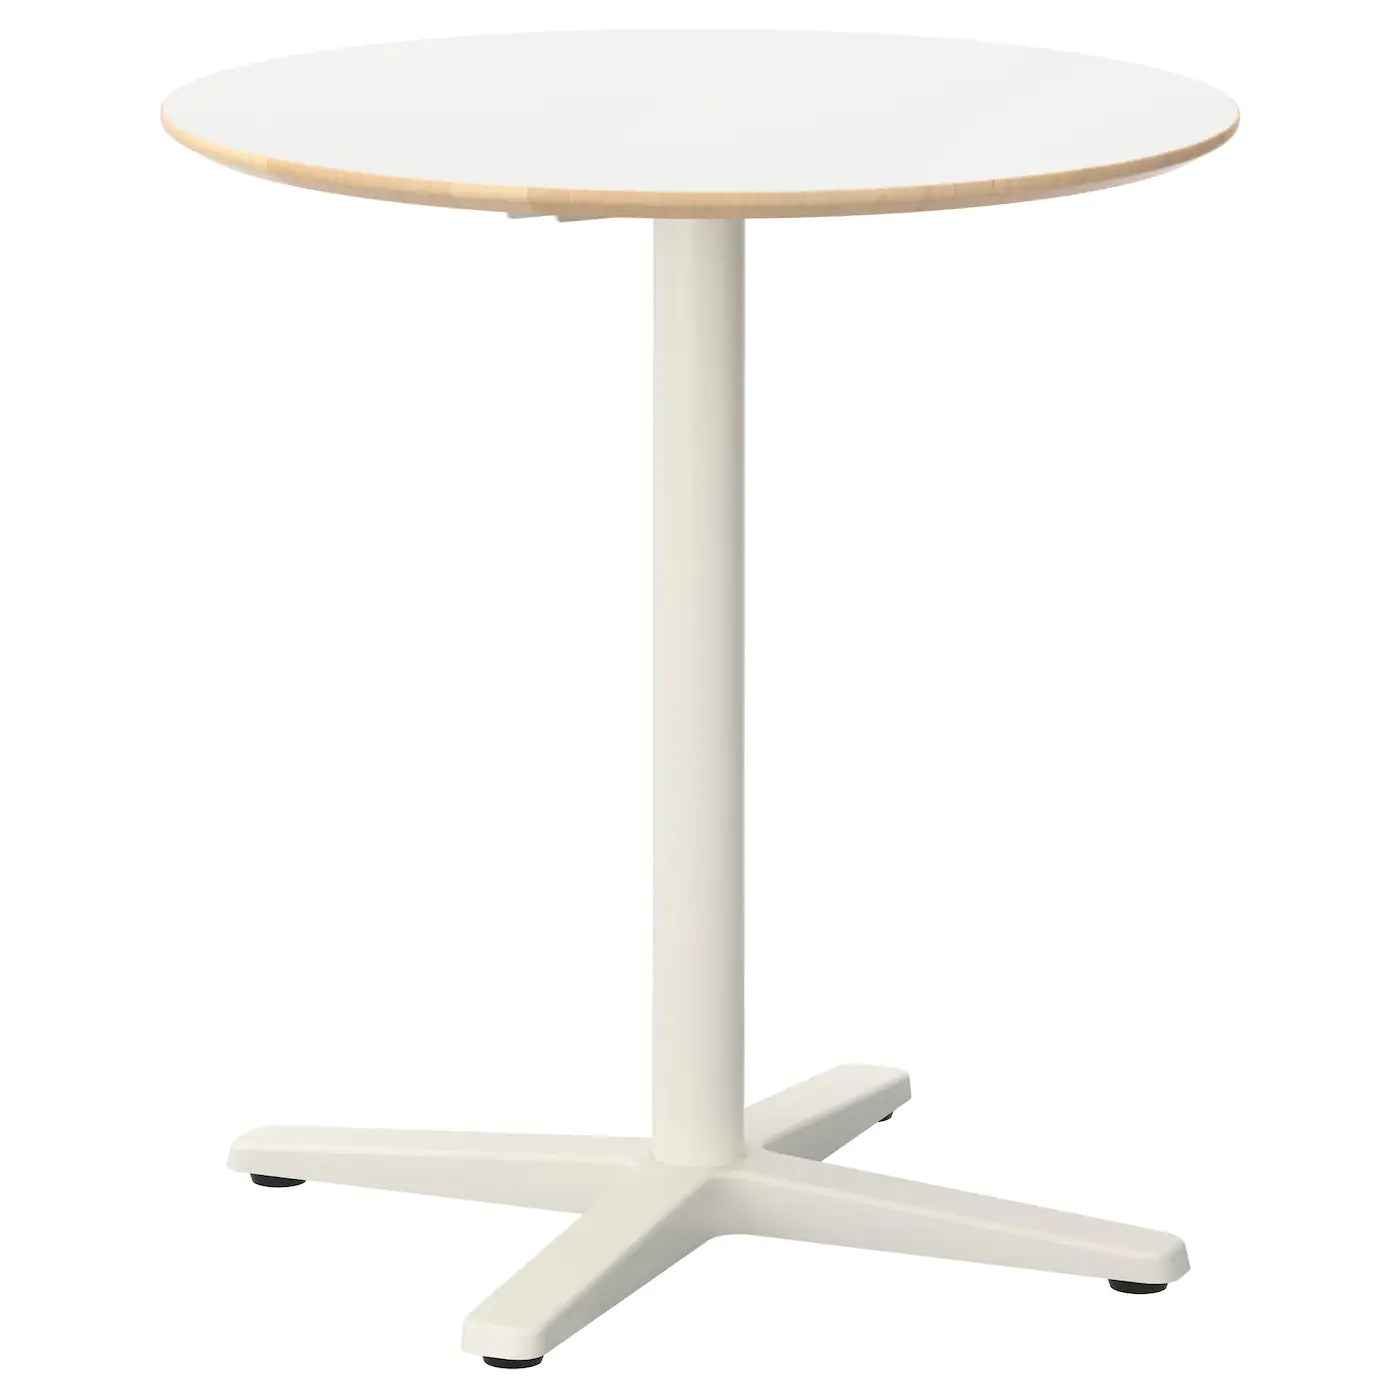 Cafe Tables Billsta Table White White 70 Cm Ikea